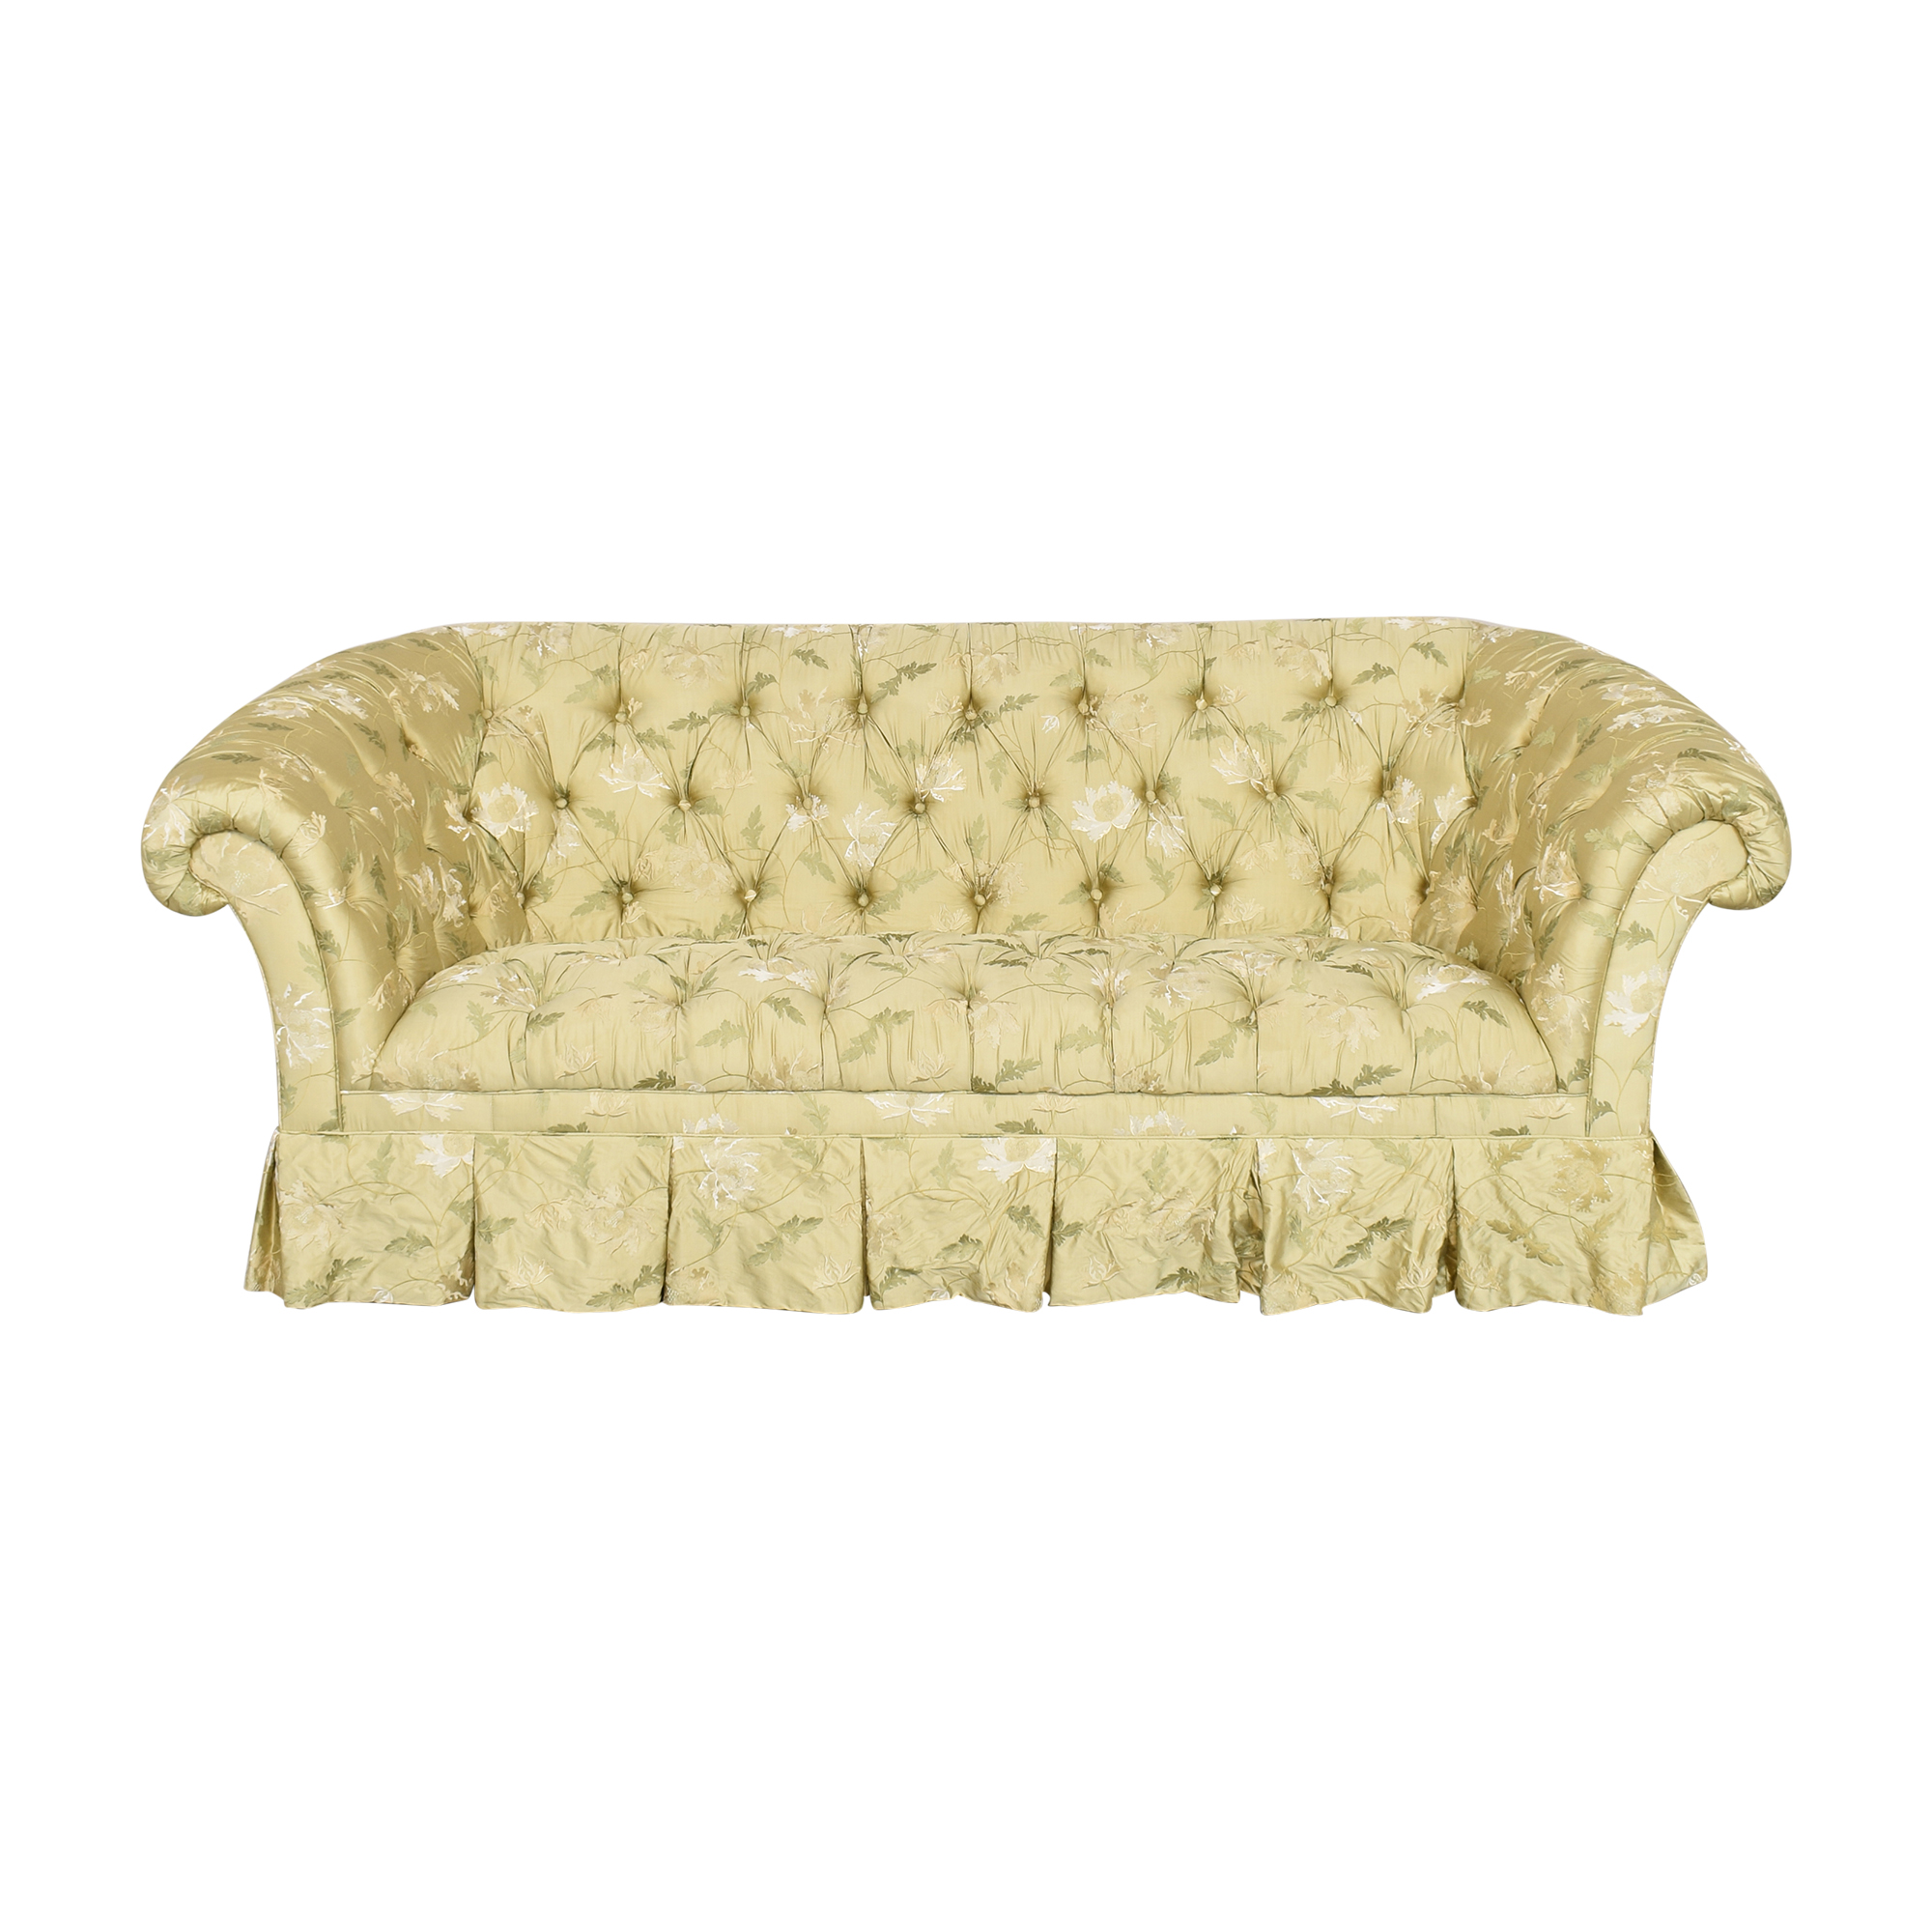 Lillian August Lillian August Chesterfield Floral Sofa for sale